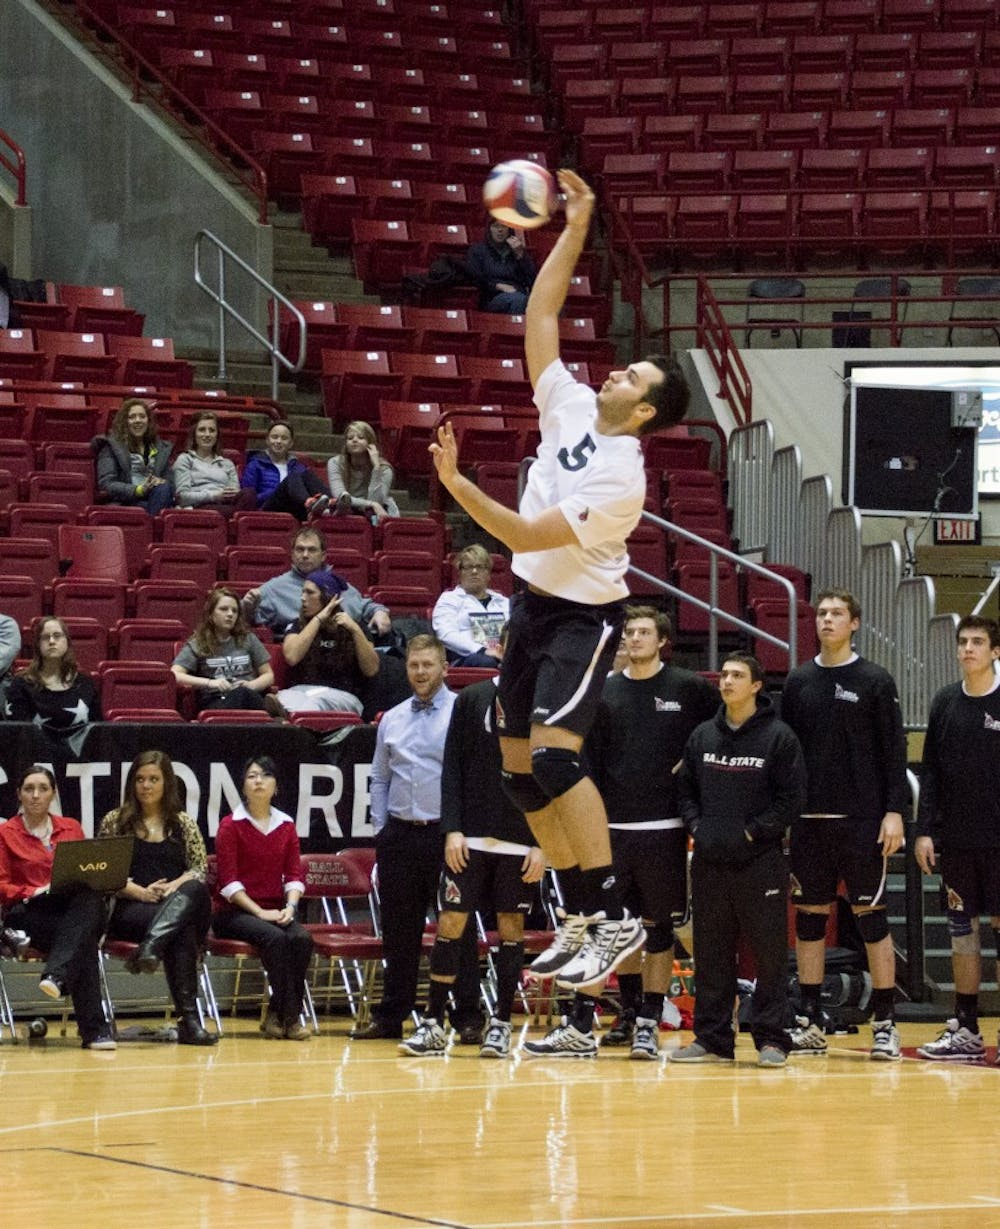 Sophomore outside attacker Edgardo Cartagena serves the ball during the game against Lewis on Feb. 12 at Worthen Arena. DN PHOTO ALAINA JAYE HALSEY